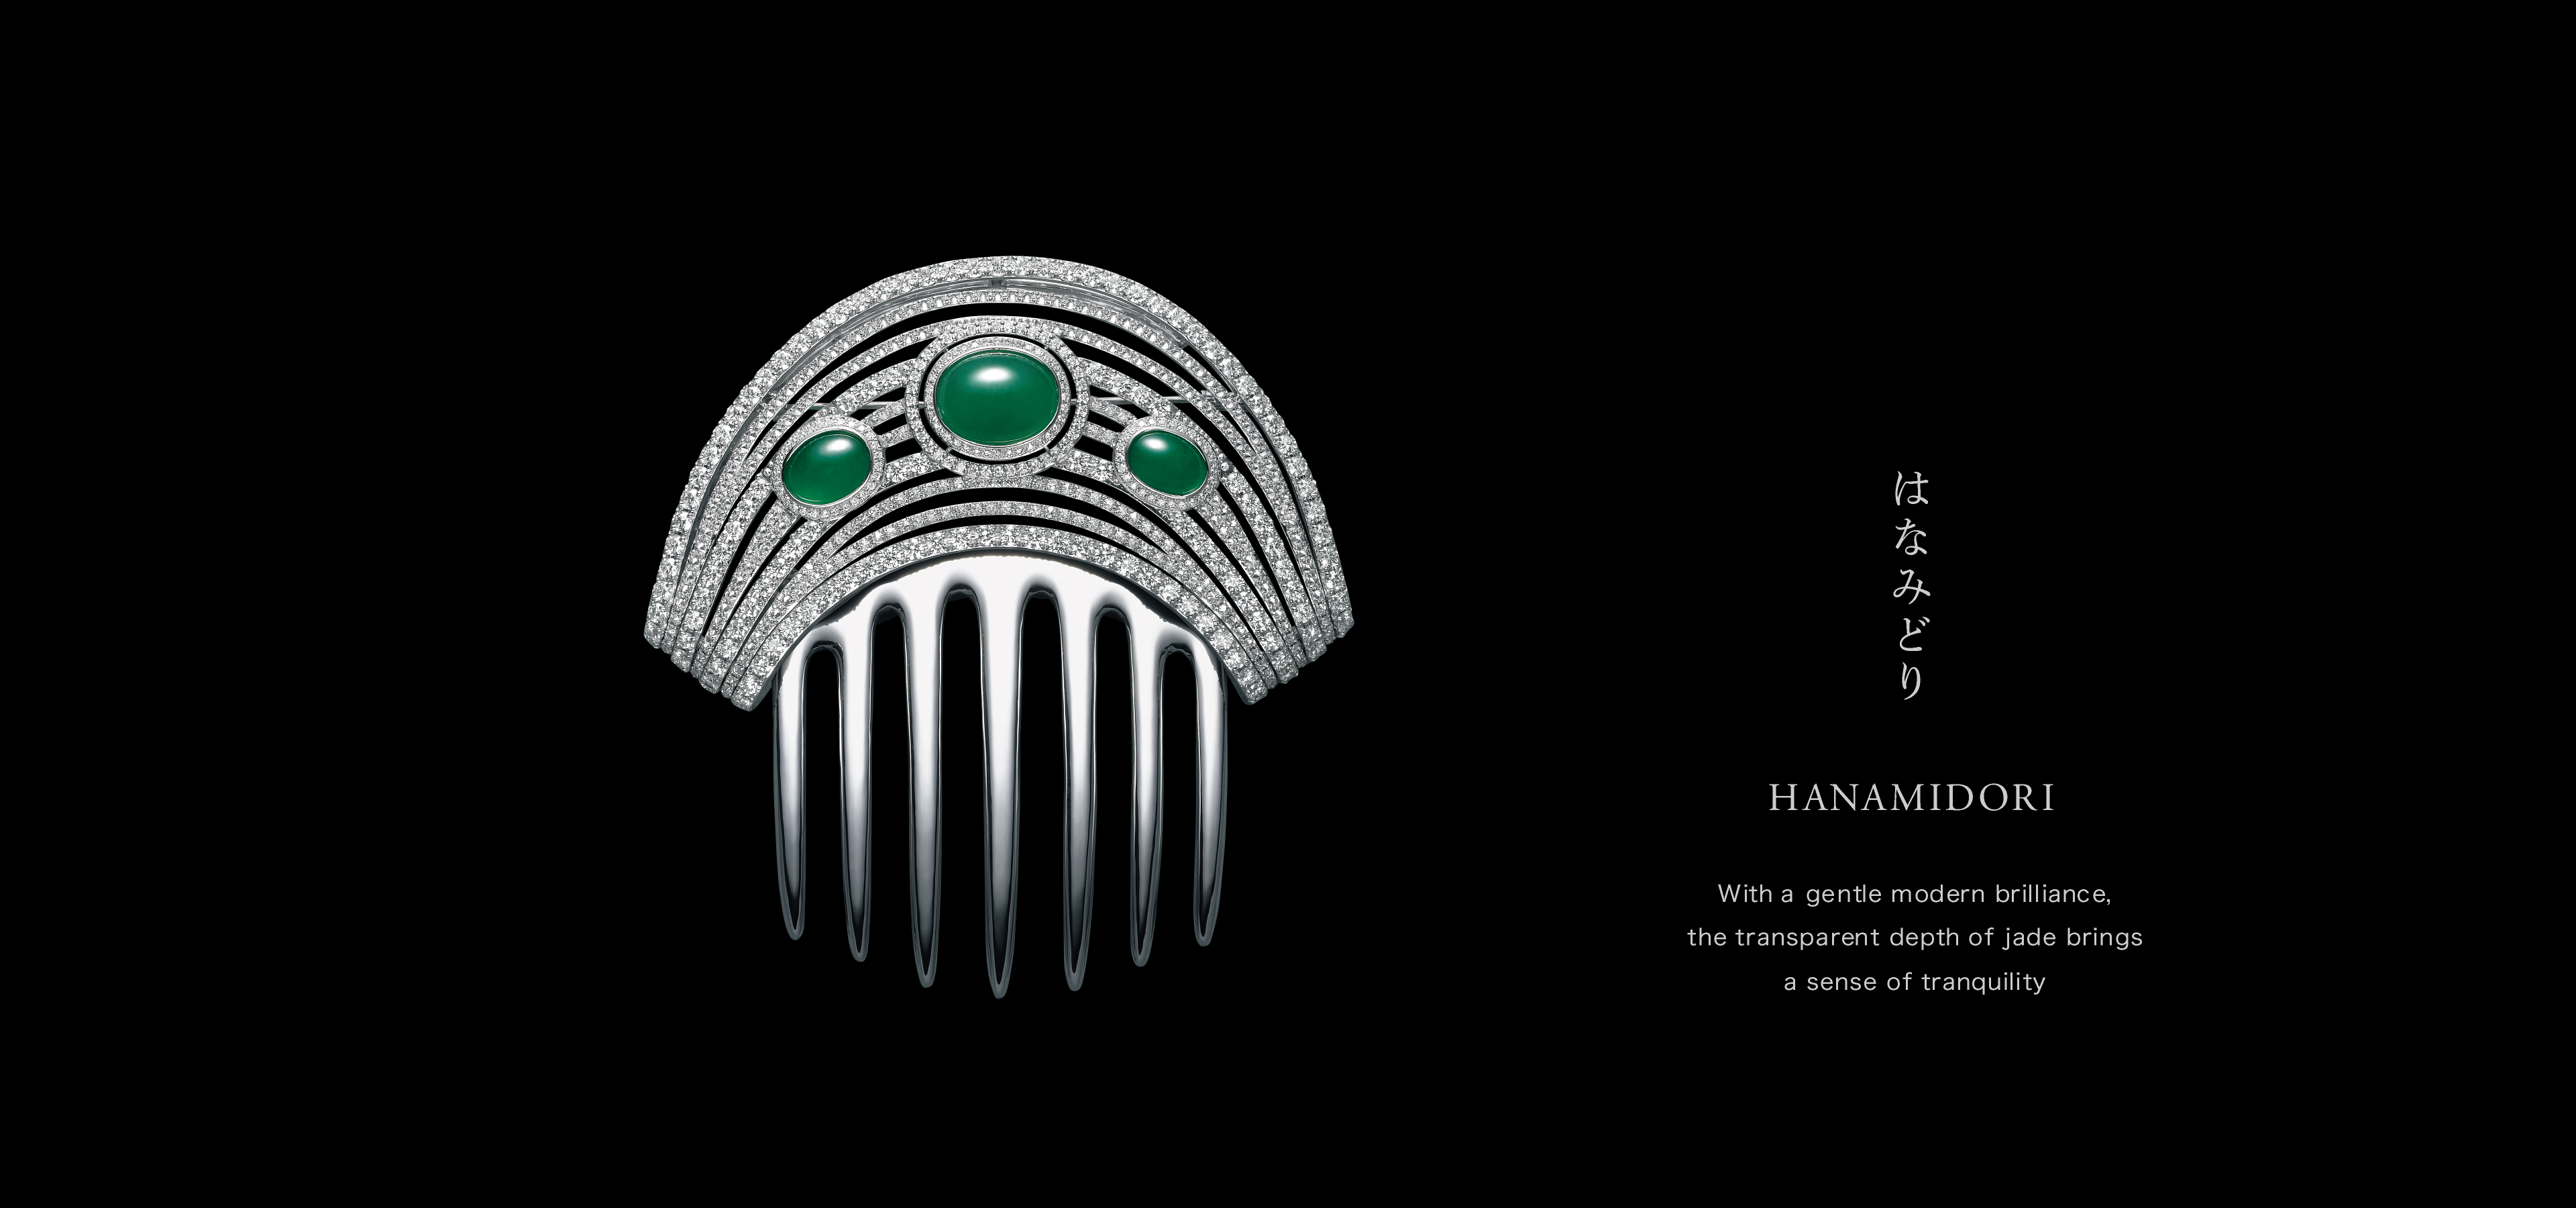 Hanamidori With a gentle modern brilliance, the transparent depth of jade brings a sense of tranquility